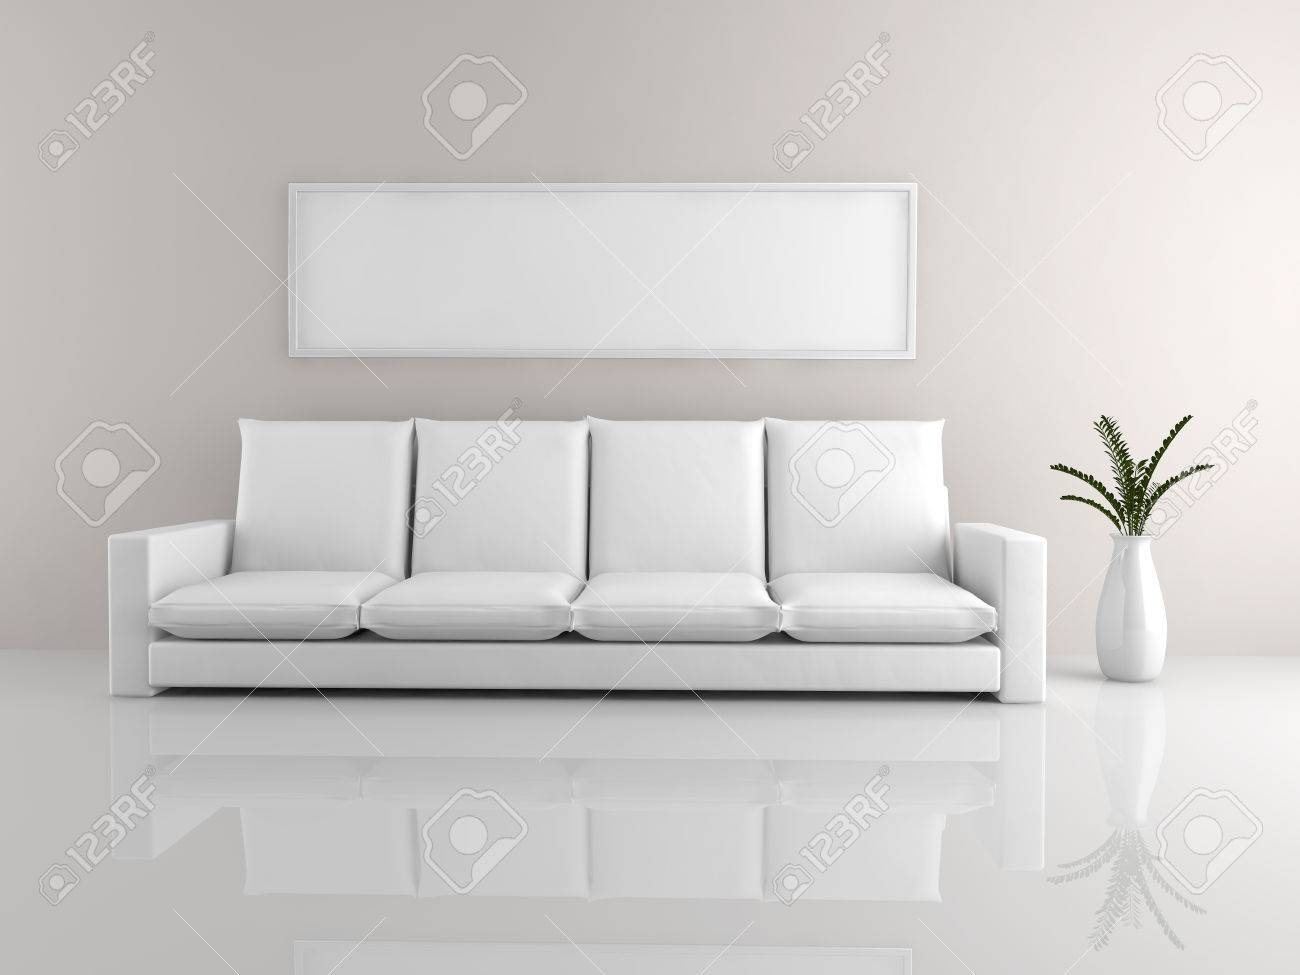 Wondrous A Room With A Minimalist White Sofa And A Picture Frame Unemploymentrelief Wooden Chair Designs For Living Room Unemploymentrelieforg